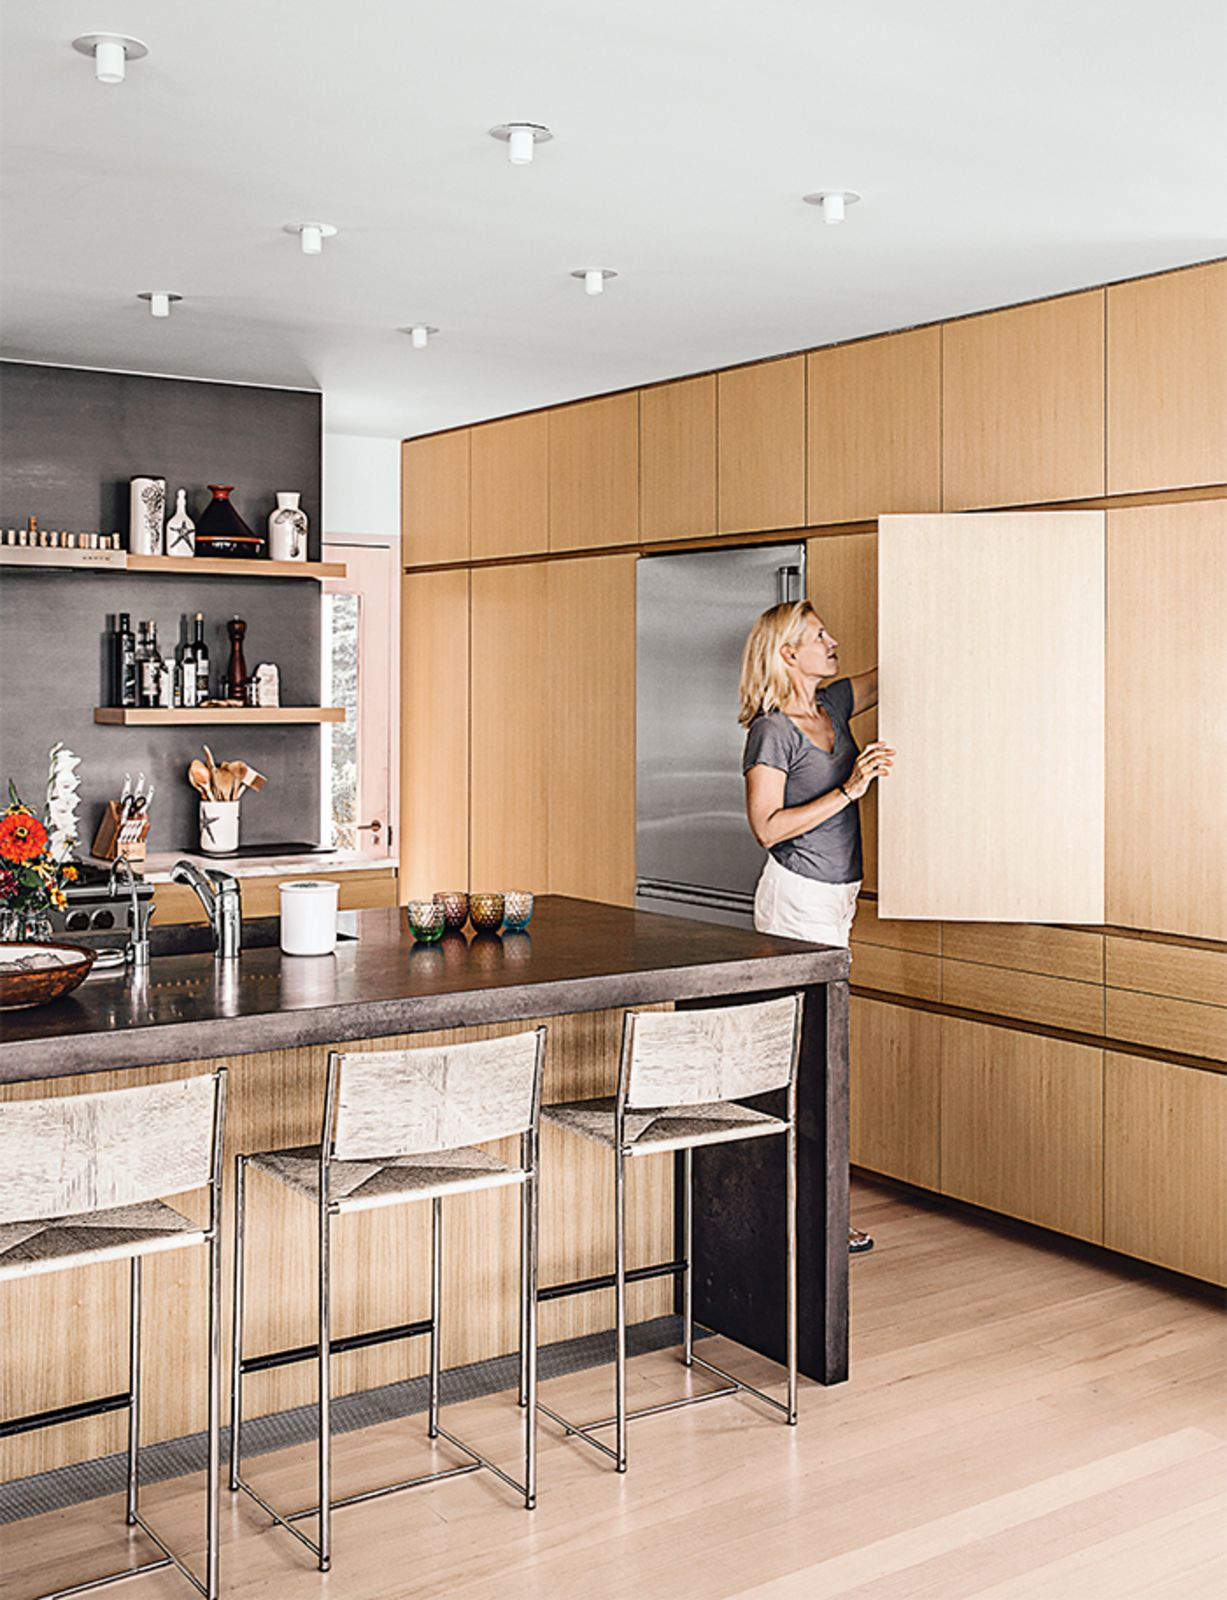 Exceptional Dwell: Modern Connecticut Summer Home Renovation With Japanese Elm  Cabinets, Calacatta Marble, And Concrete Countertop Island In The Kitchen Gallery